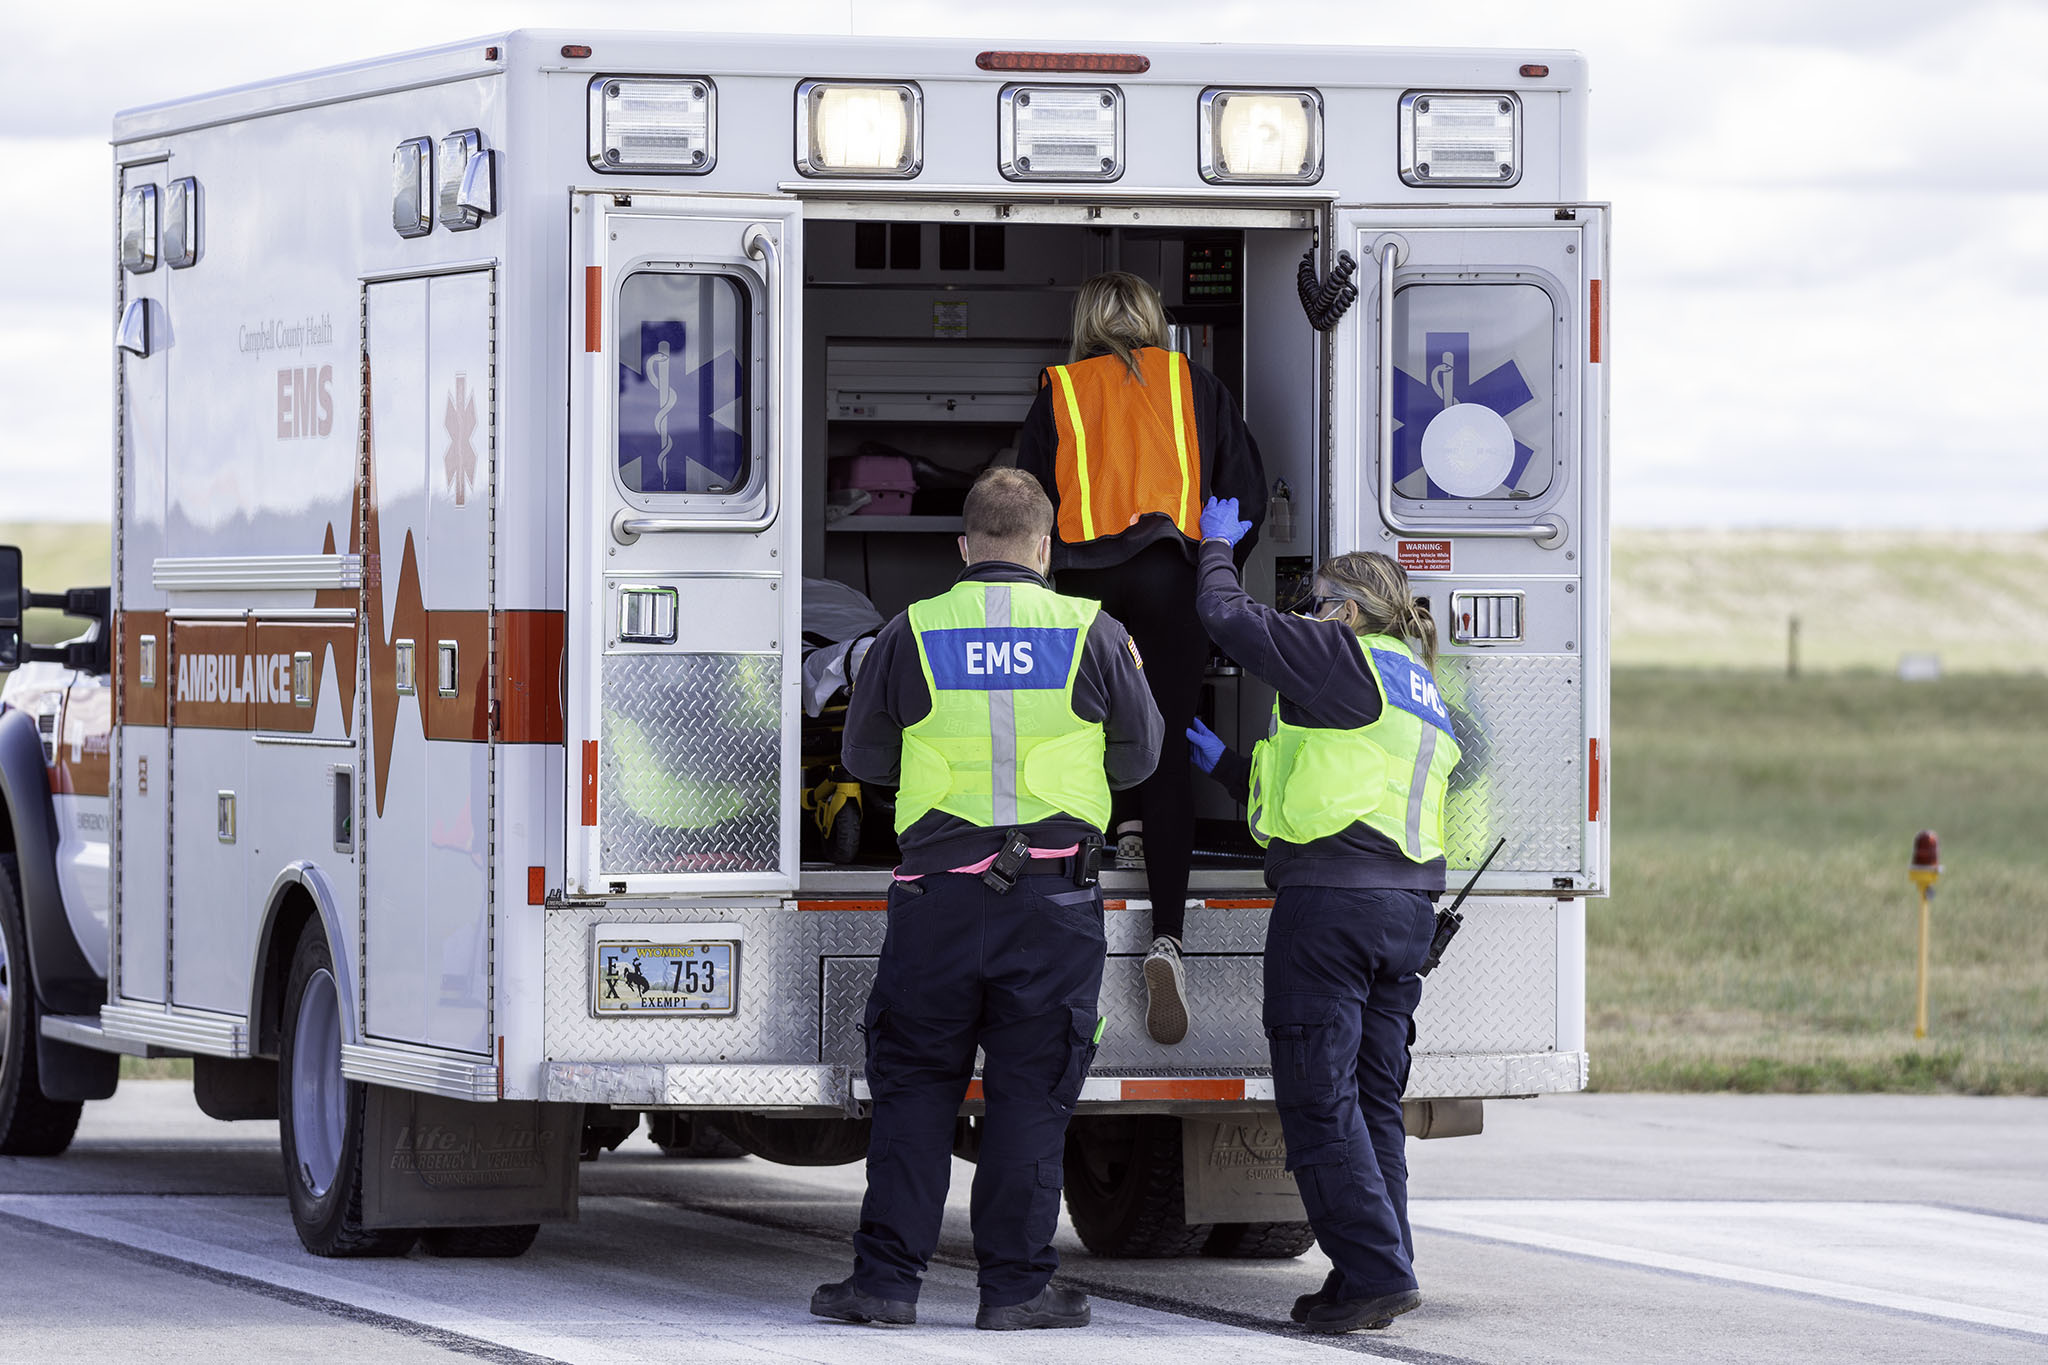 Two EMS personnel help a victim into the ambulance